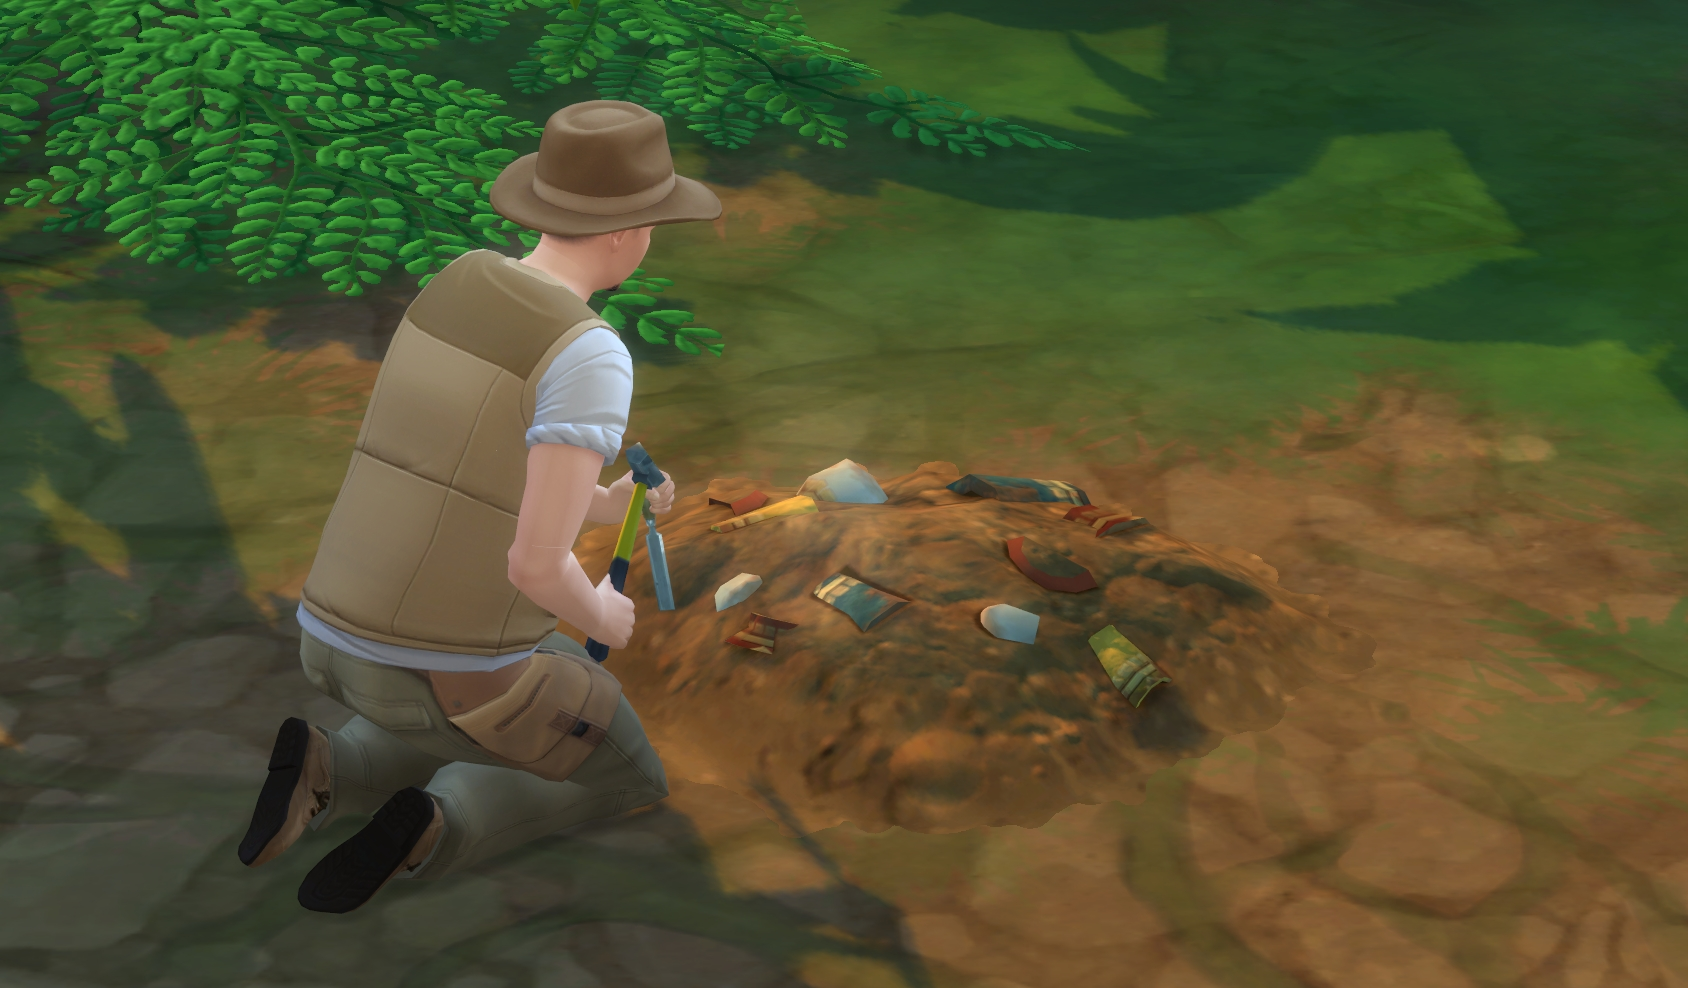 The Sims 4 Jungle Adventure: An excavation site for the Archaeology Skill